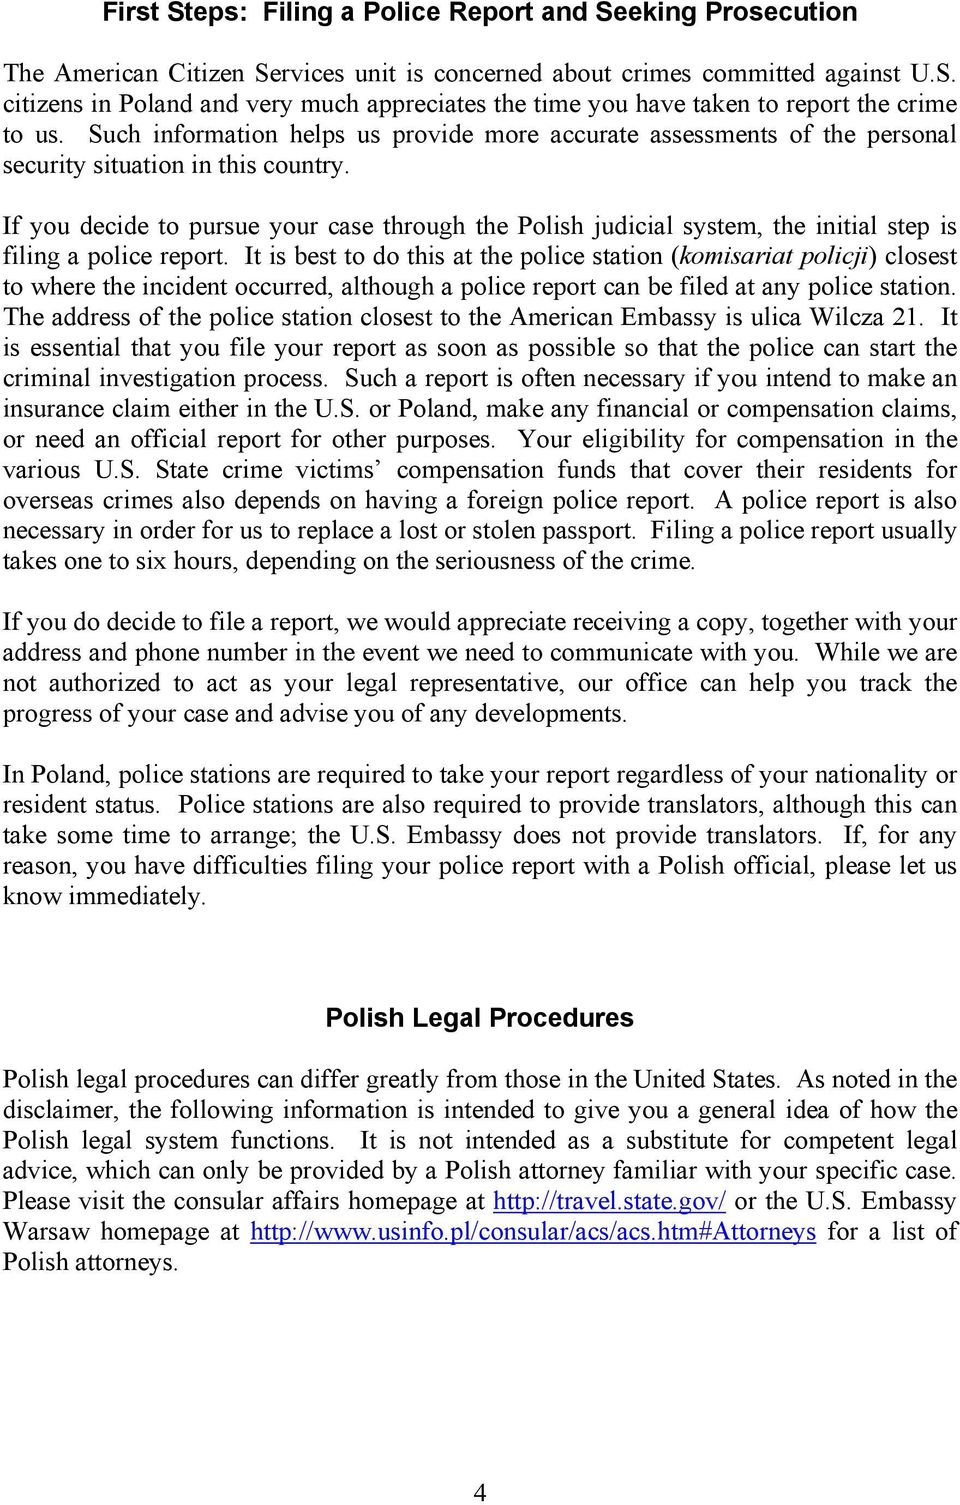 If you decide to pursue your case through the Polish judicial system, the initial step is filing a police report.